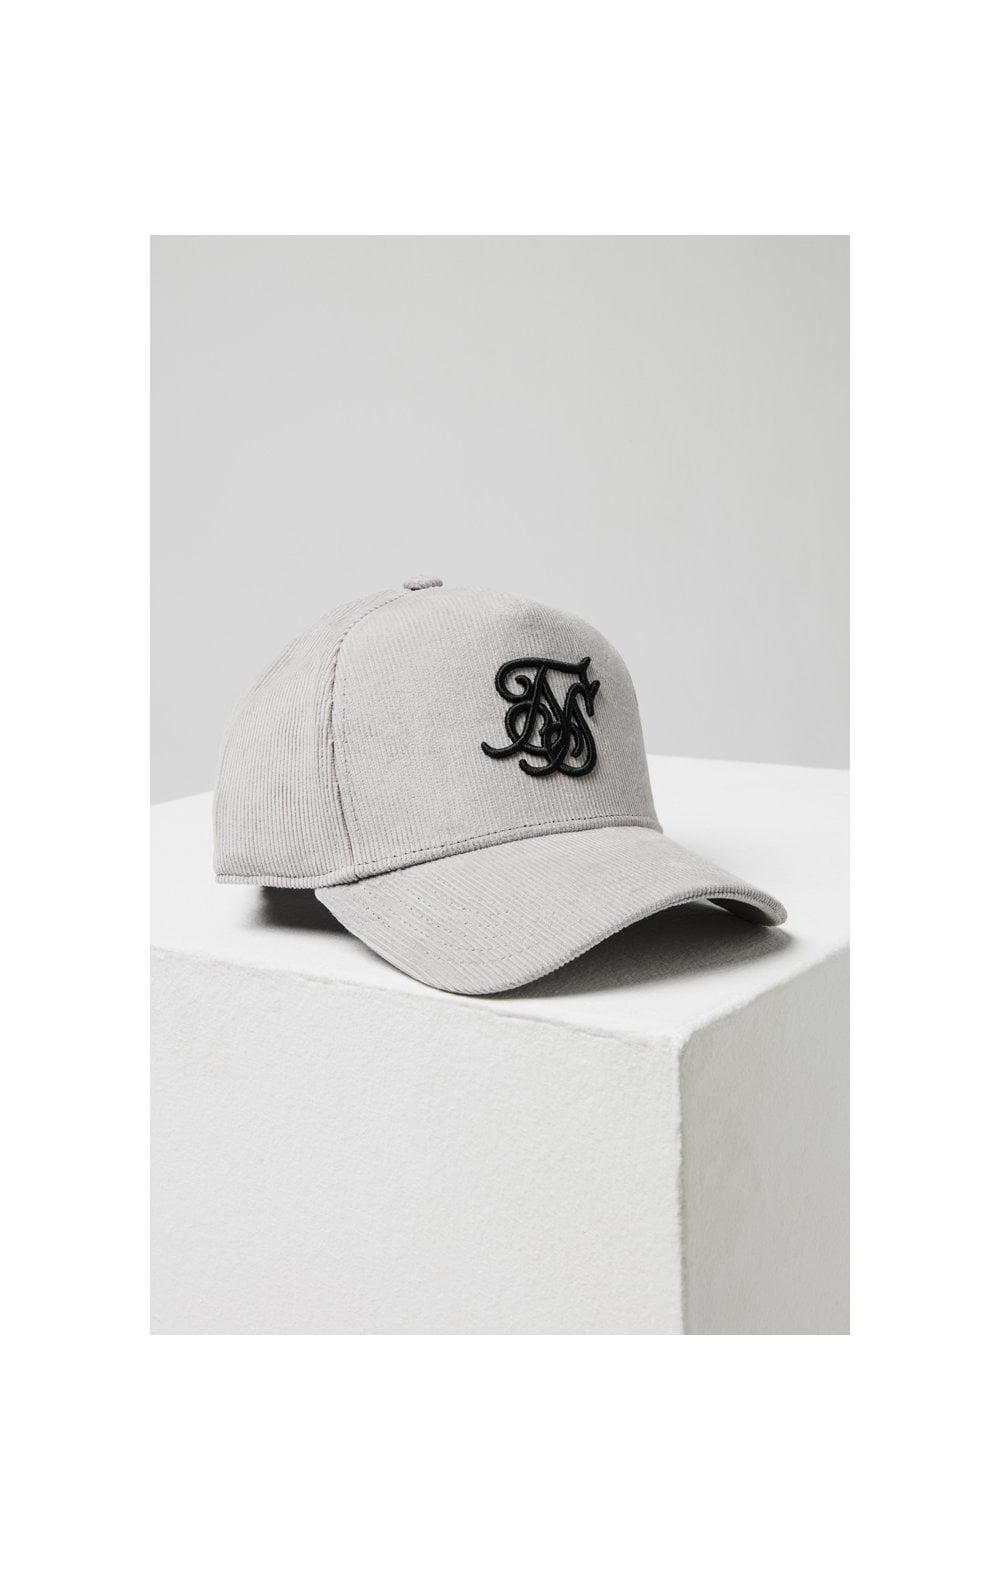 SikSilk Corduroy Full Trucker - Light Grey (1)